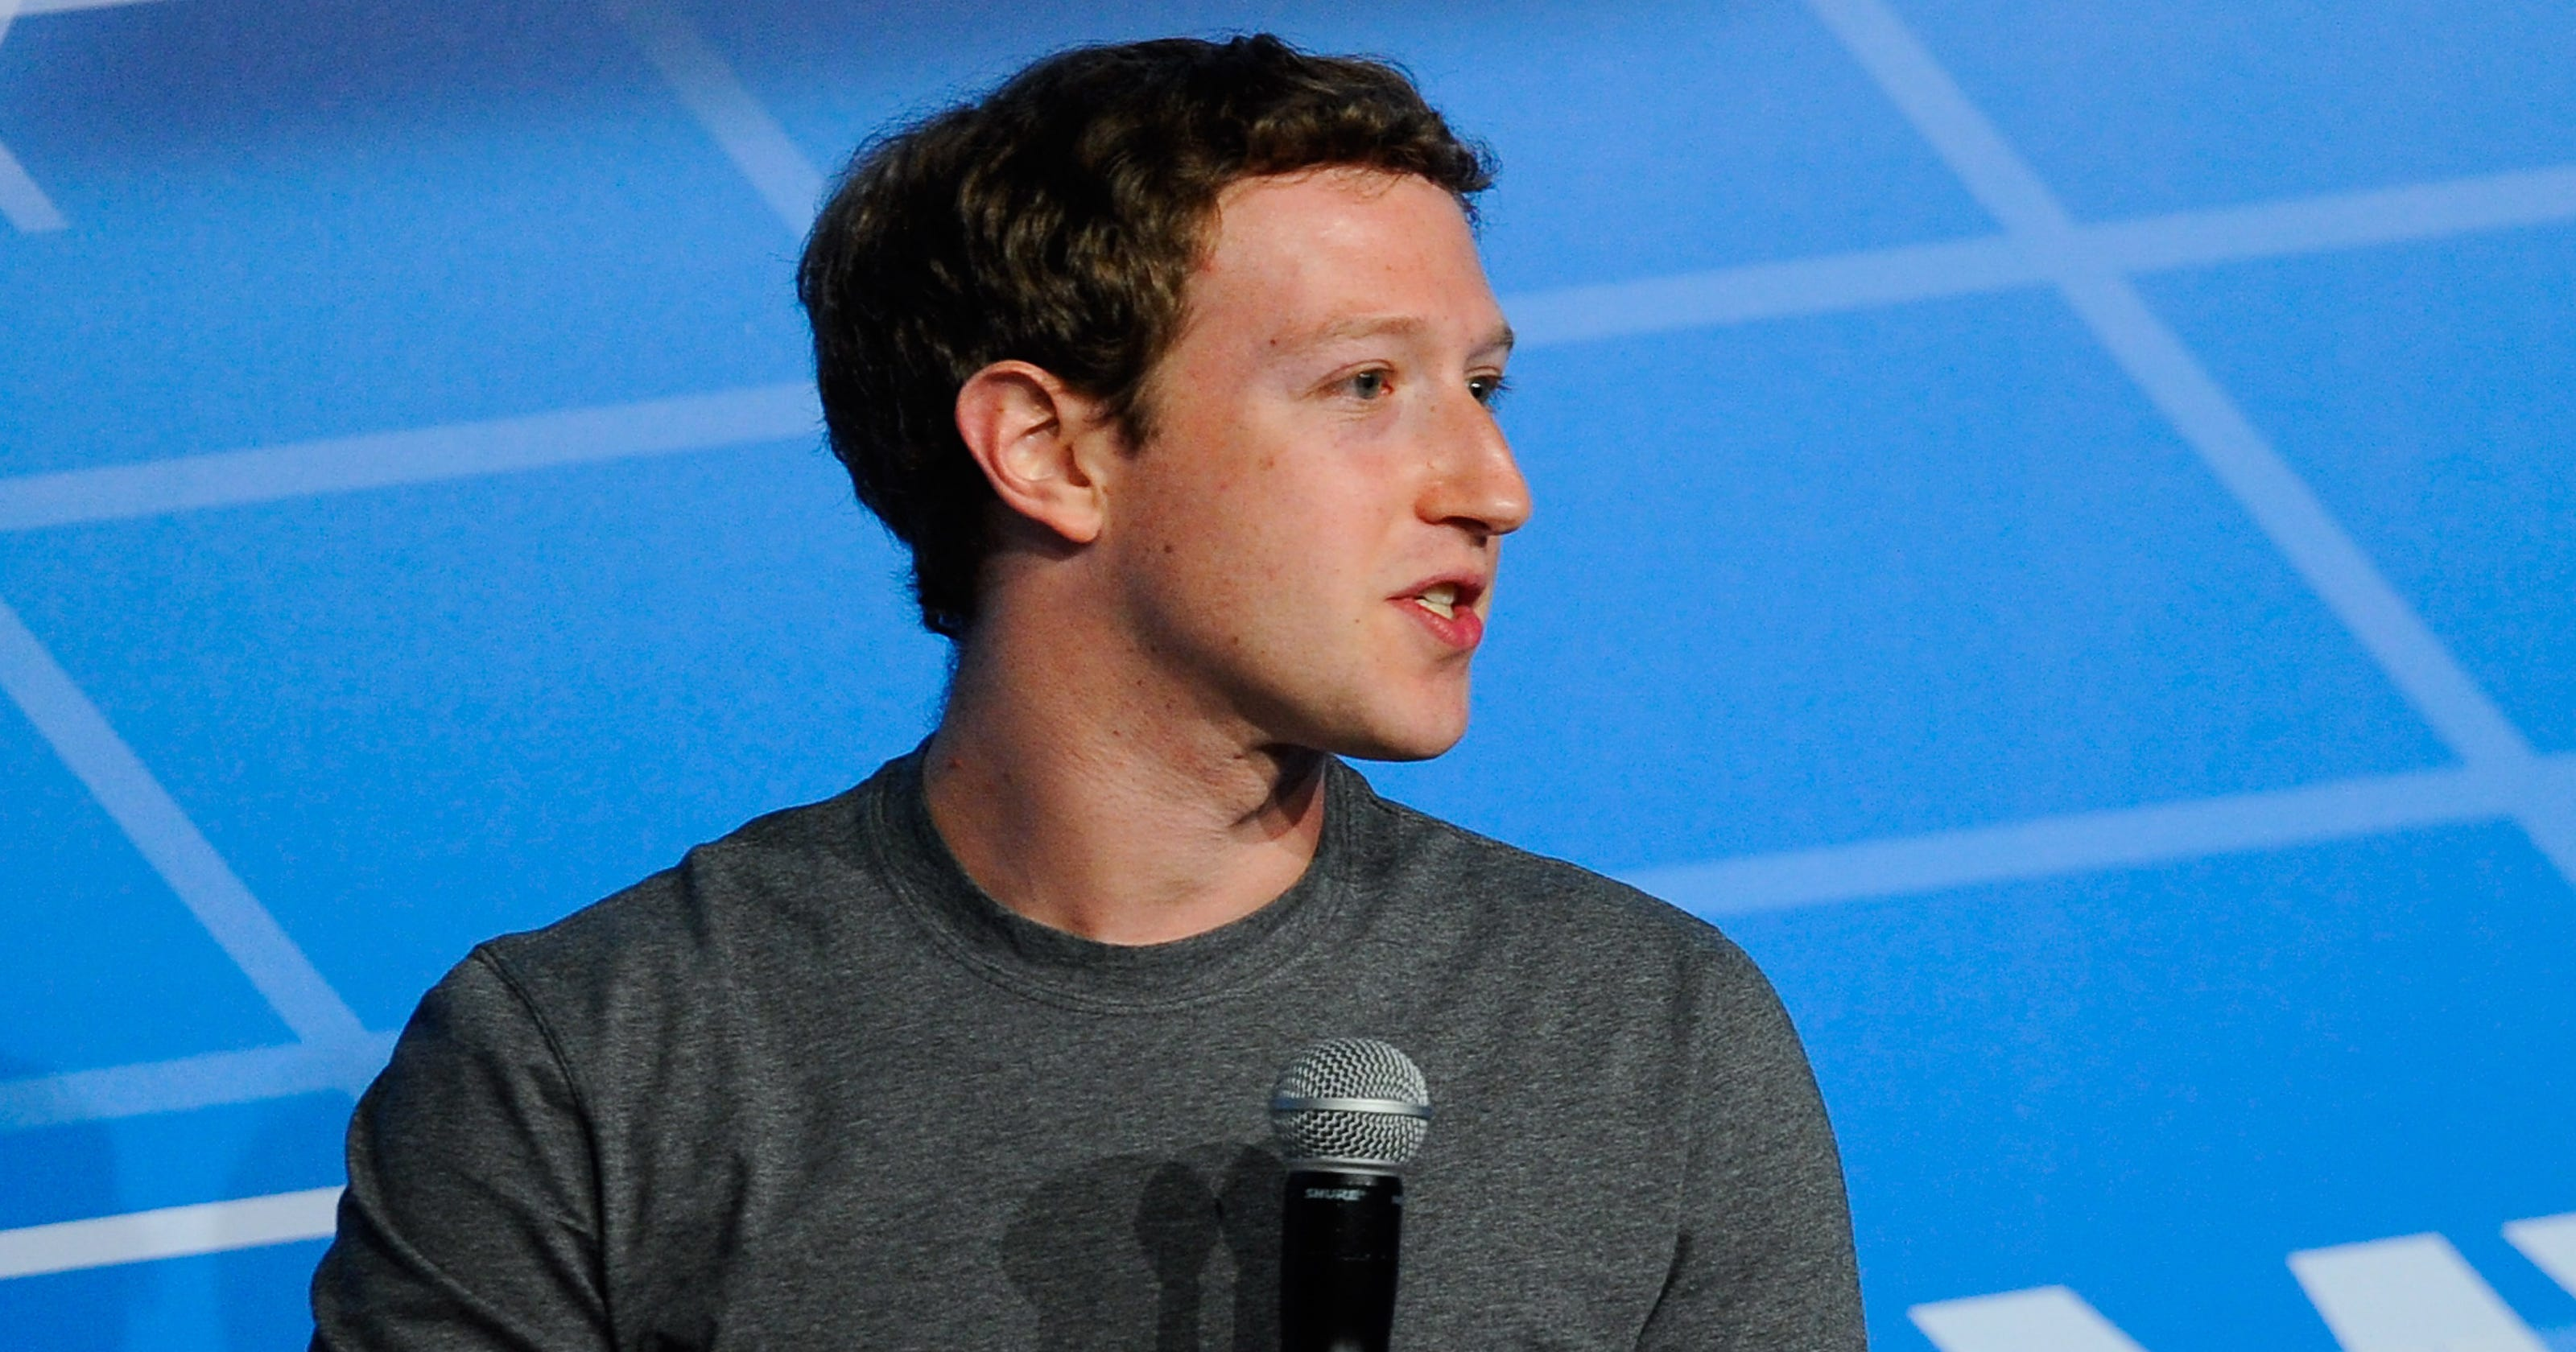 Mark Zuckerberg In Ugly Lawsuit Over Palo Alto Home